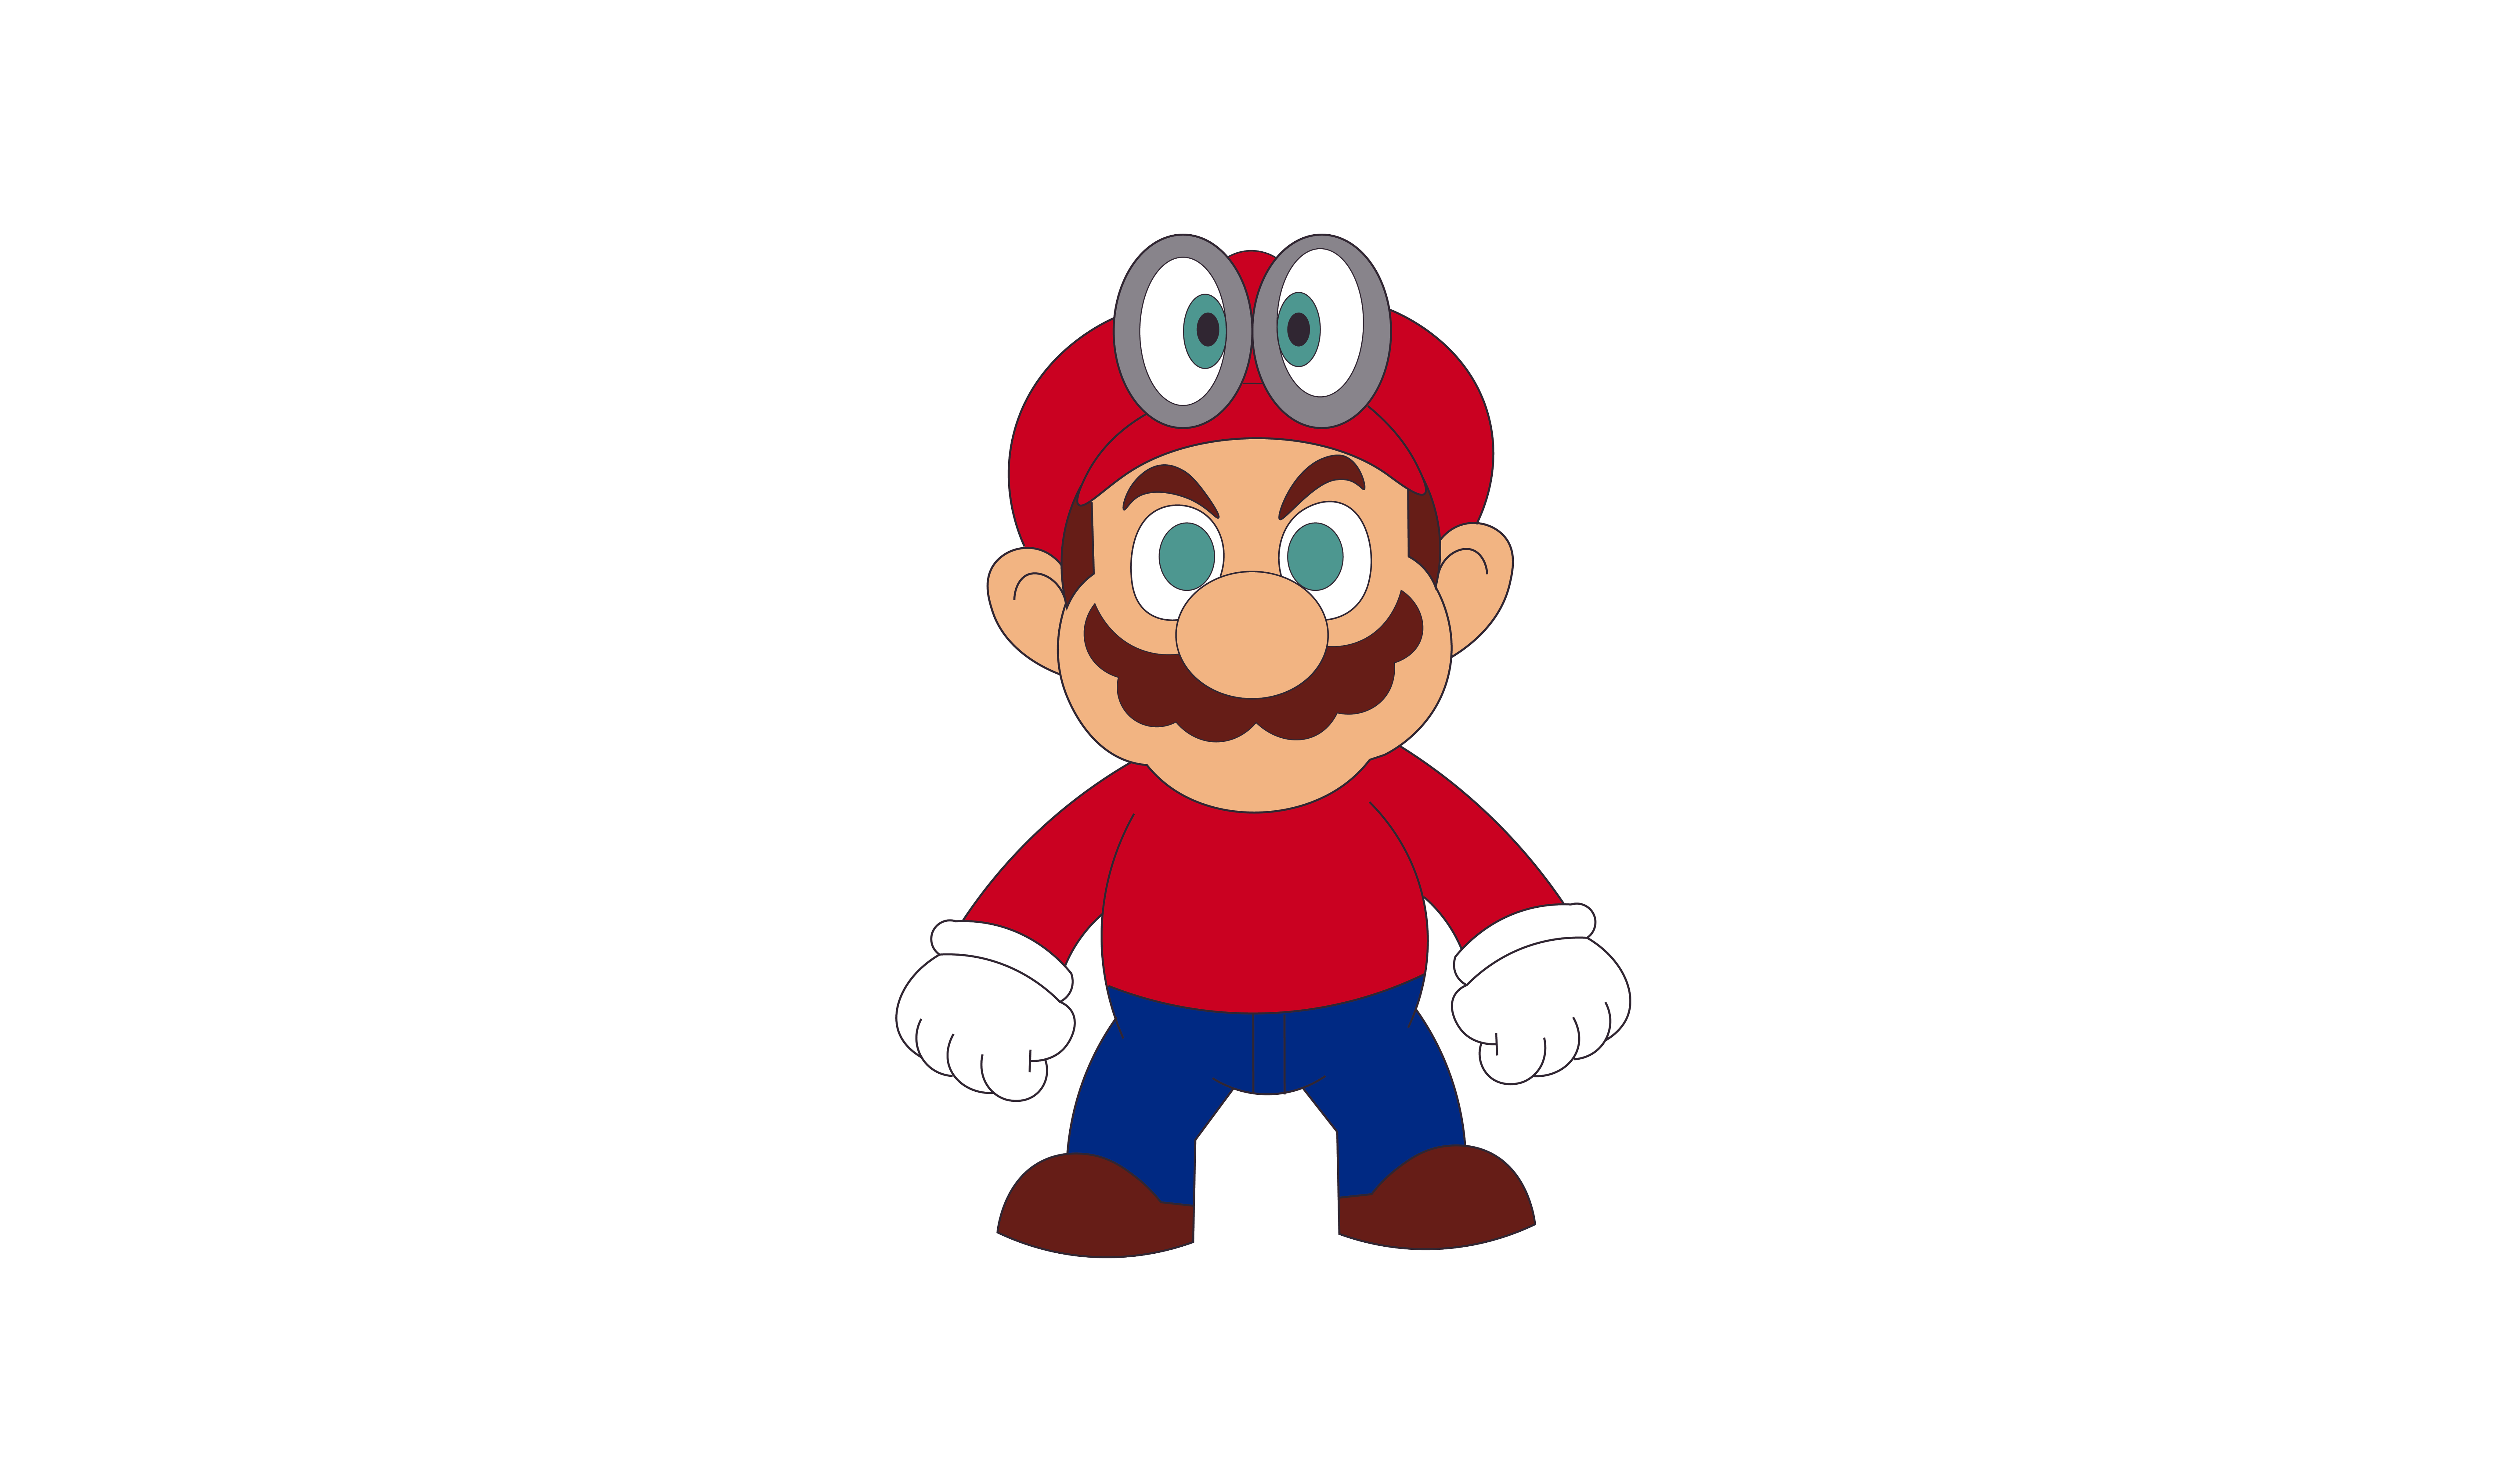 How To Draw Super Mario Odyssey Https Youtu Be Nf 9d4g0r4a Mario Characters Mario Drawings